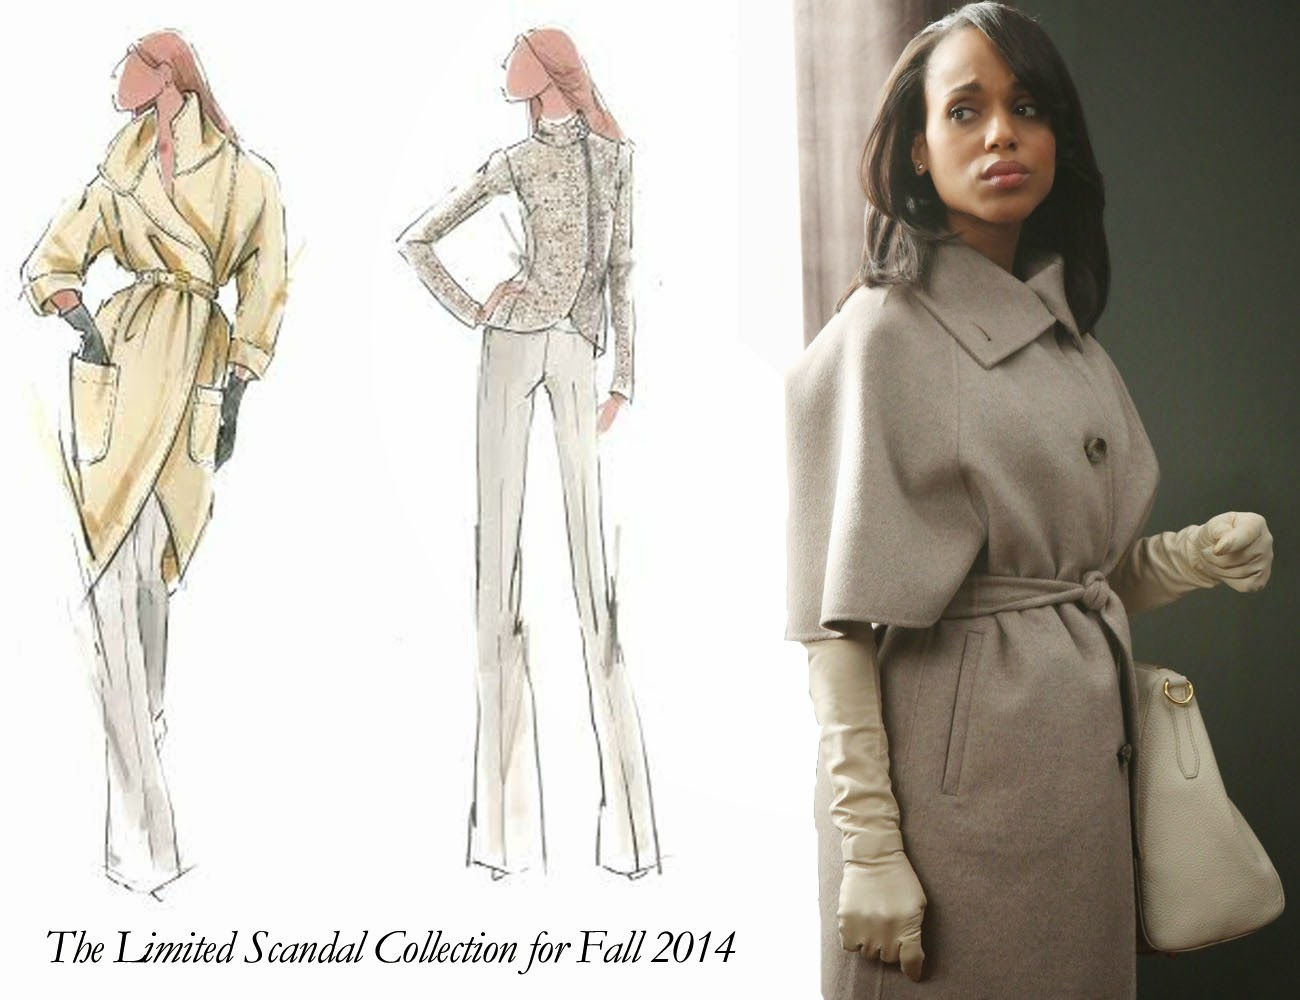 The Limited Scandal Collection for Fall 2014